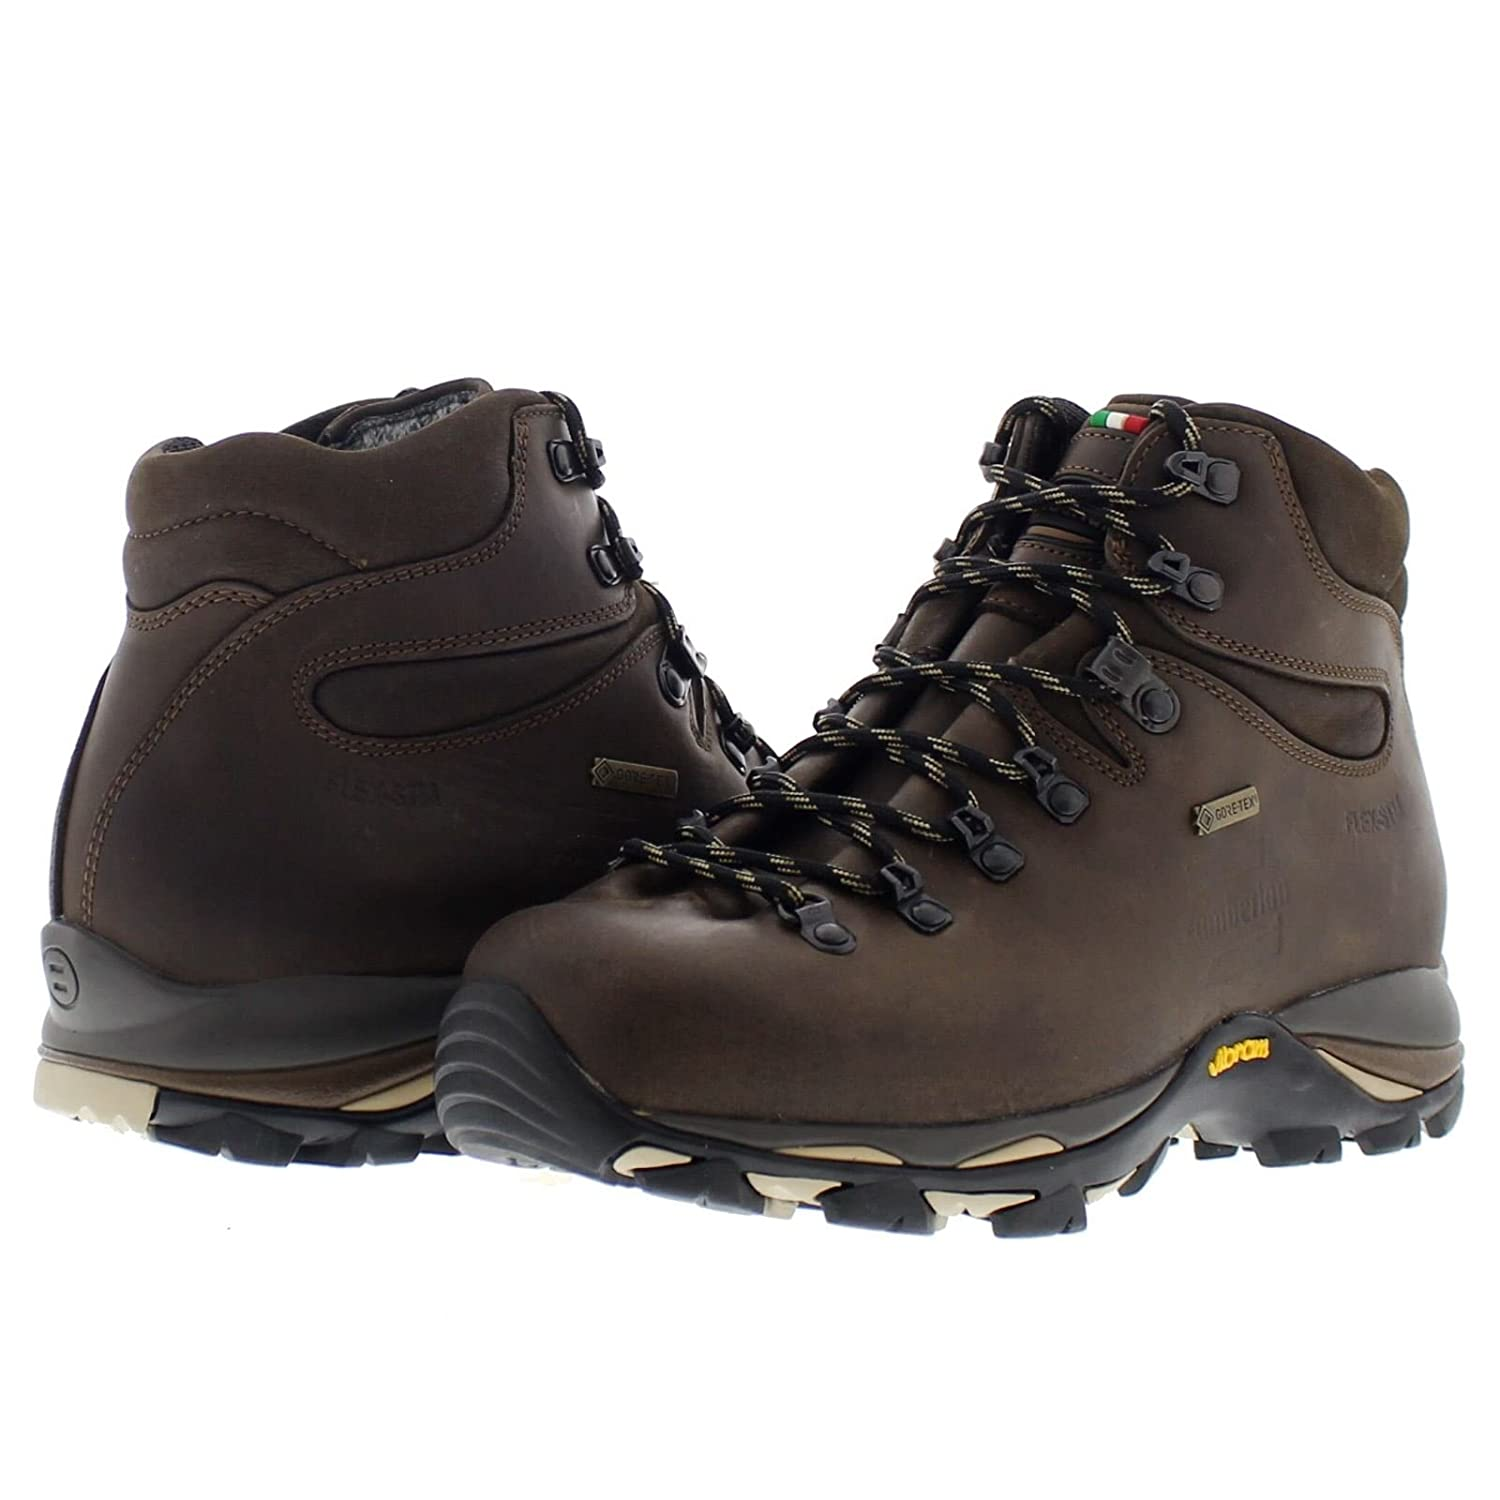 a796a4da987 Zamberlan Men's 313 Vioz Lite Gore-tex® Walking Boot